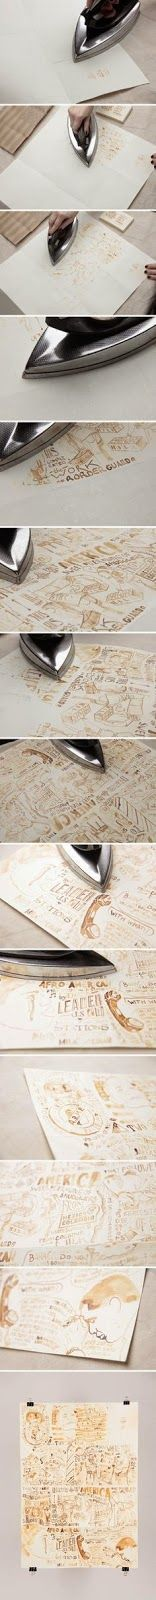 DIY Draw with milk on paper.  Let it dry for 20 minutes. Then iron to reveal your artistry!!!  :)